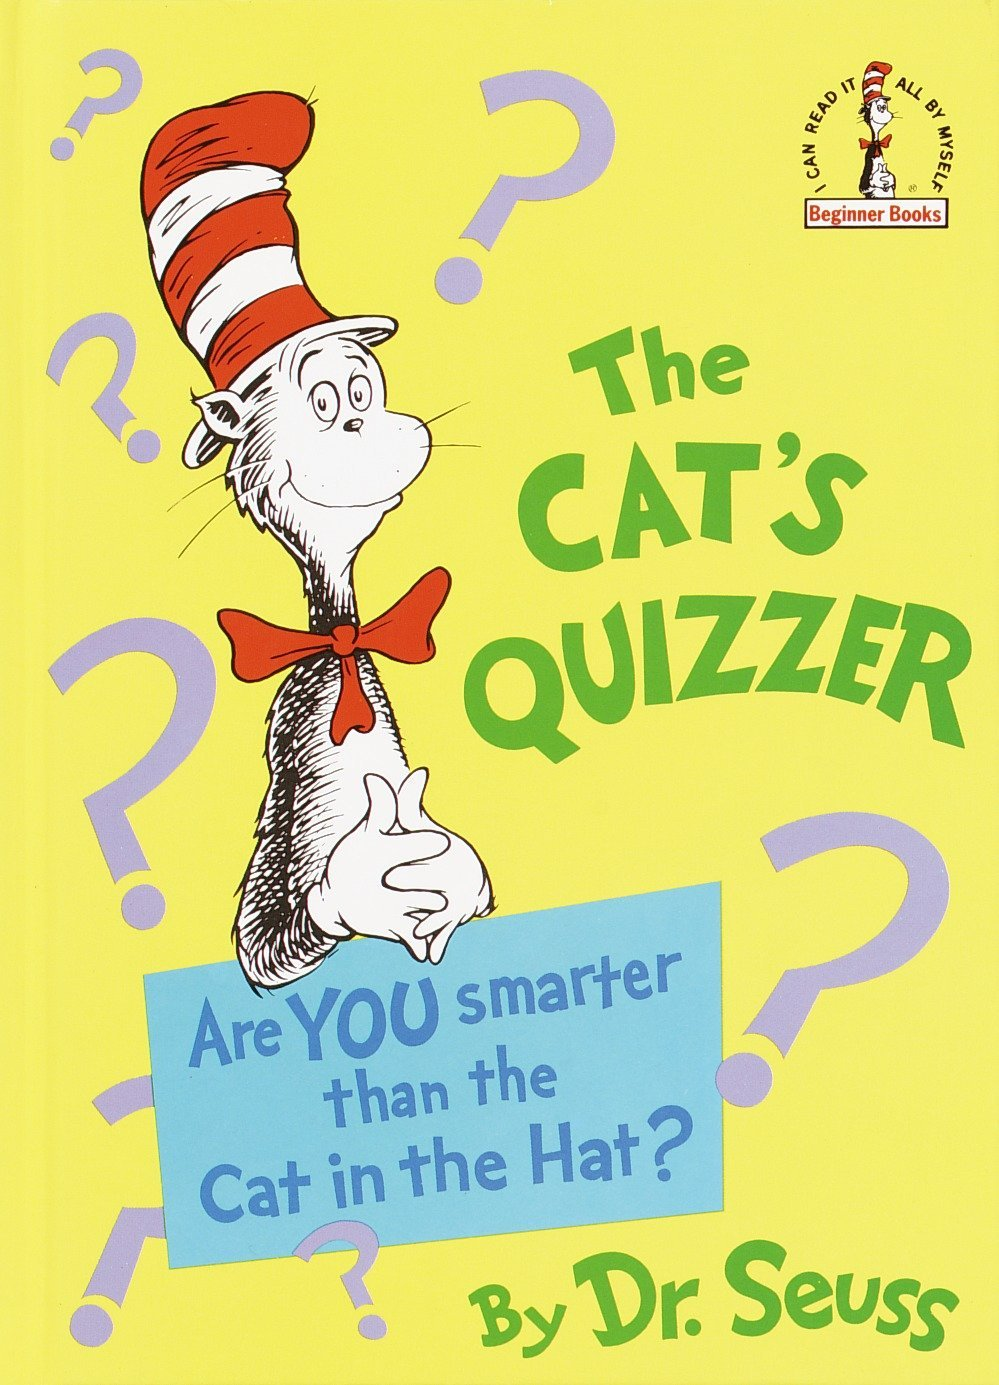 the cats quizzer book cover